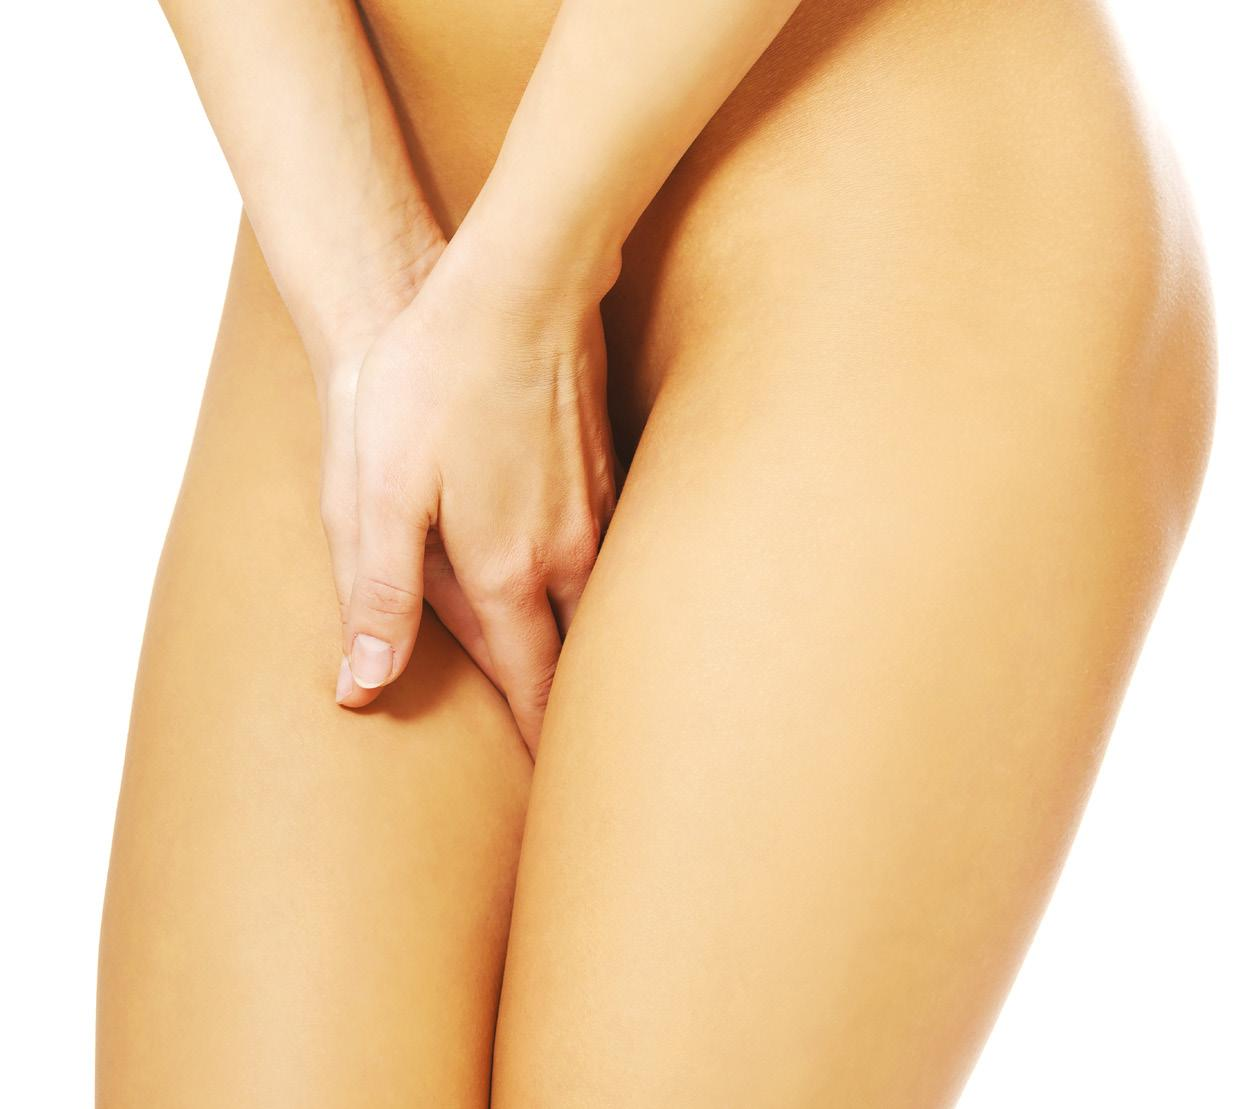 Page 20 of Special Feature: Treating Vaginal Laxity with RF